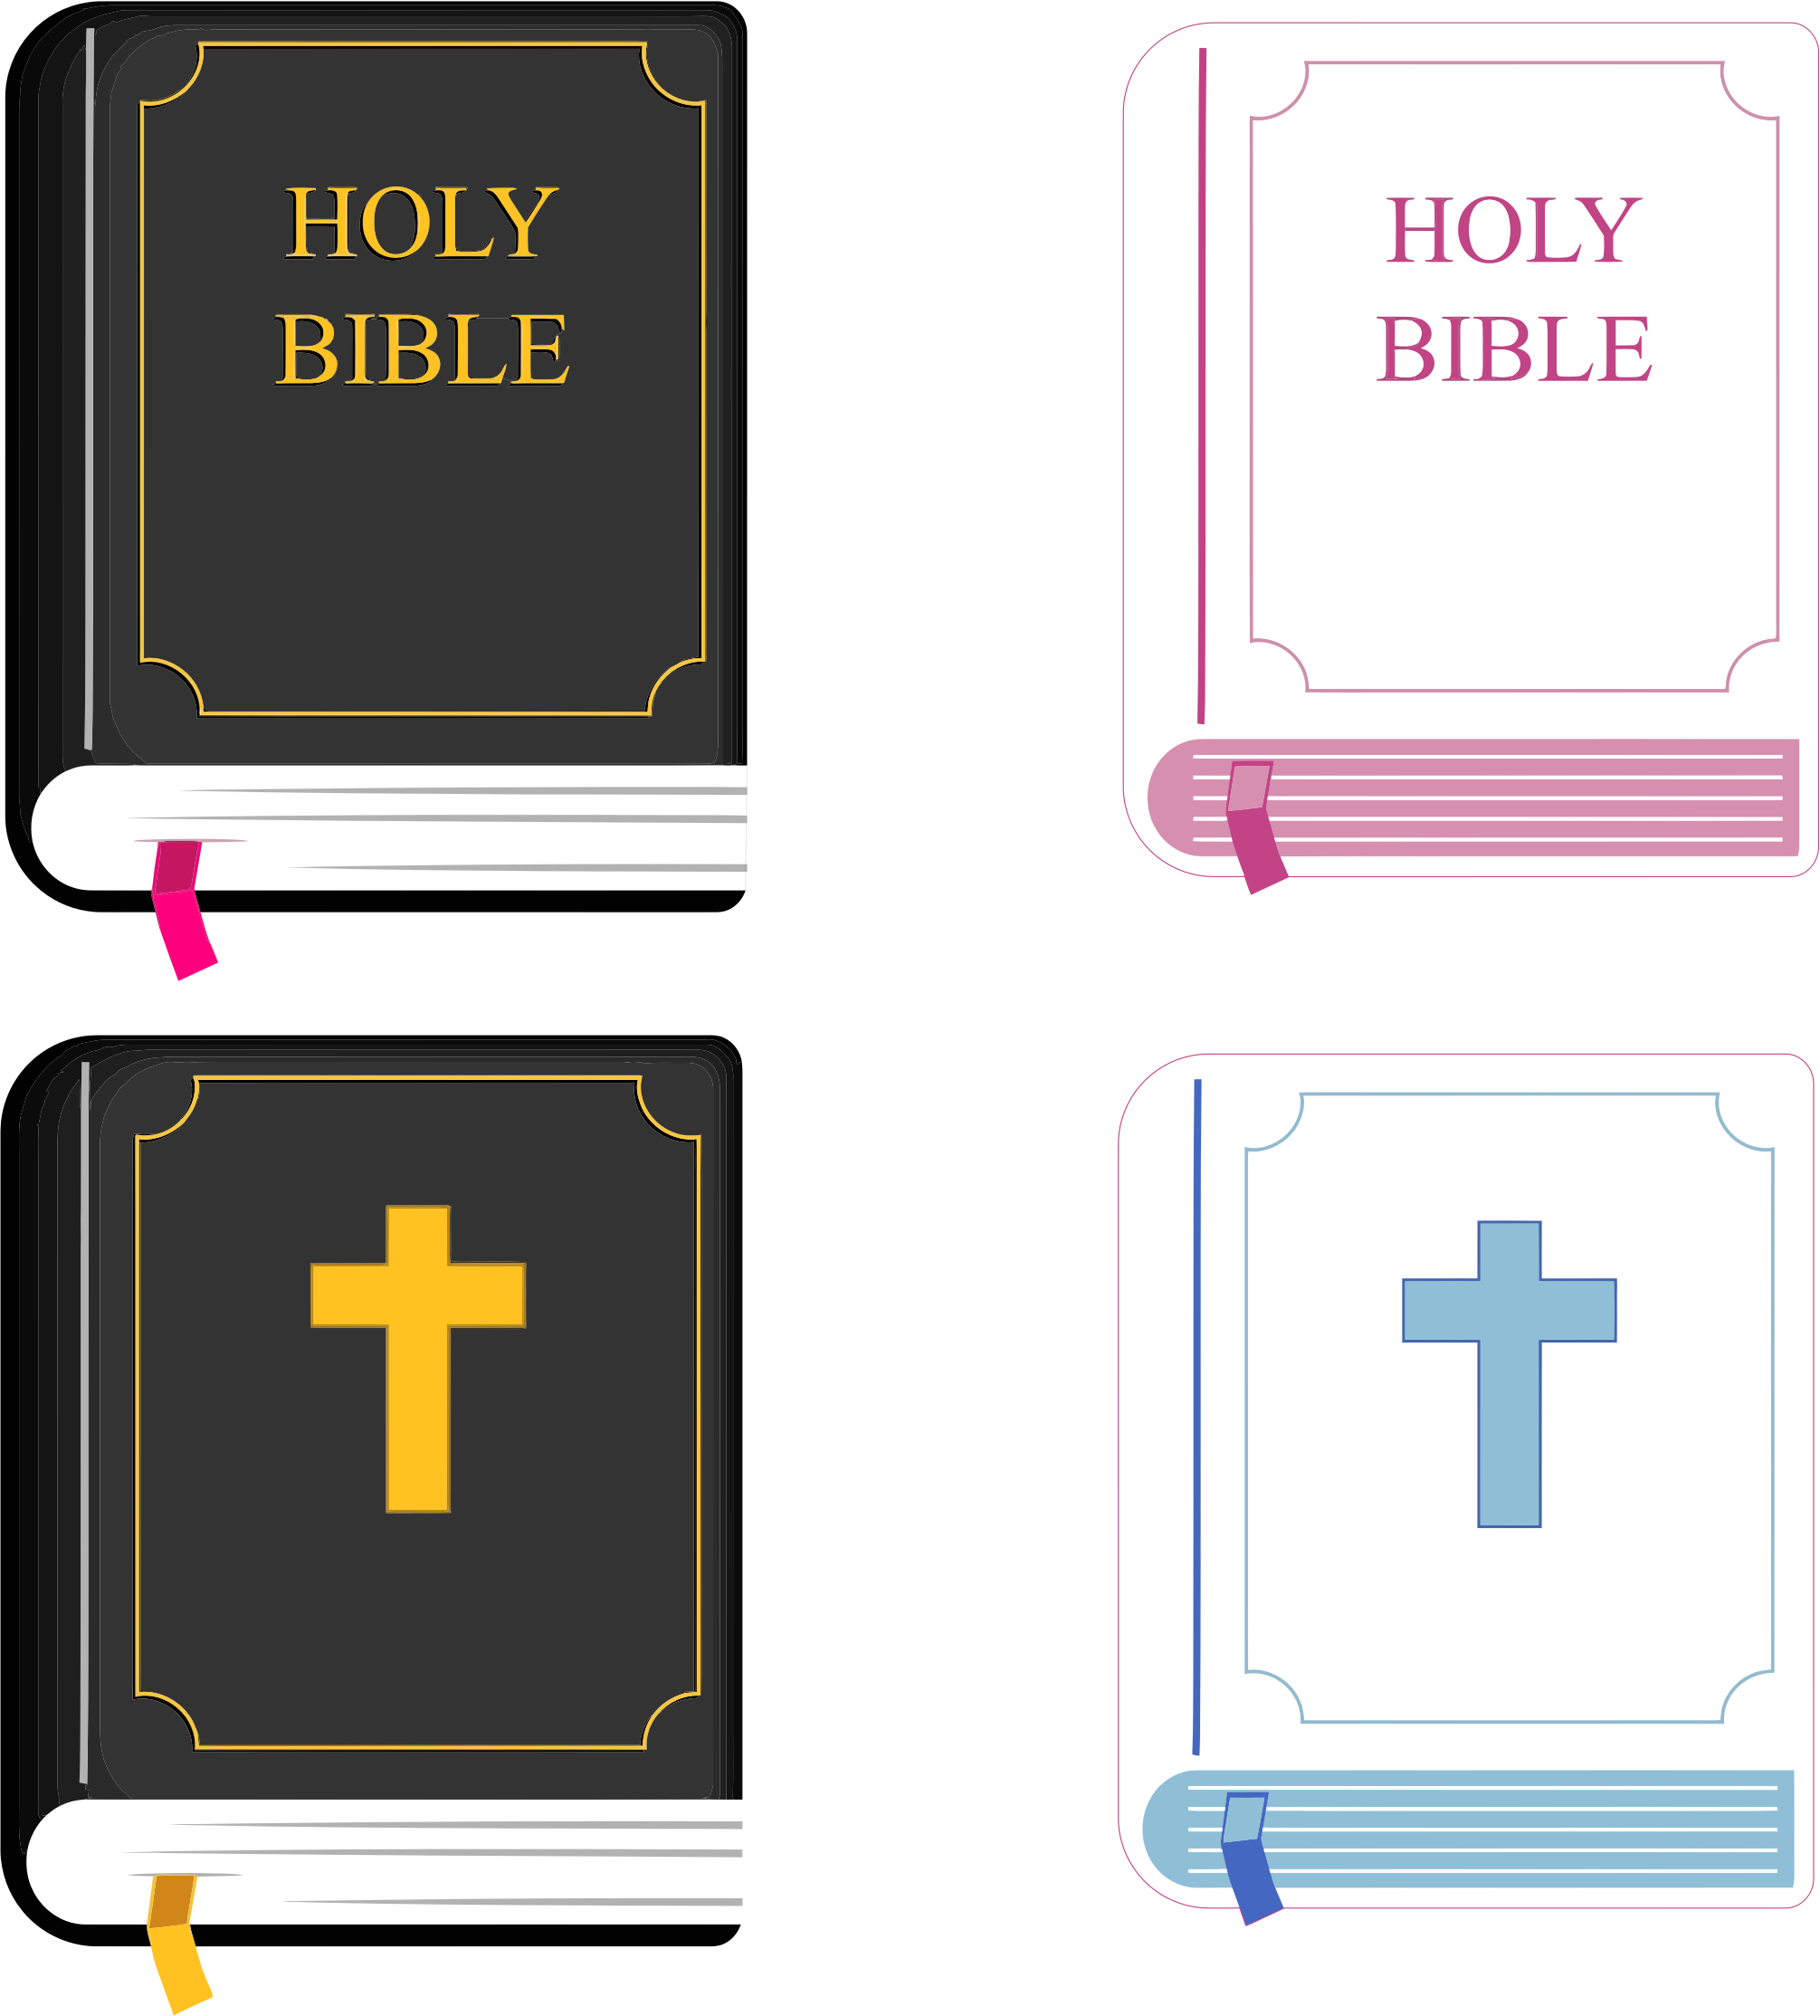 Holy Bible by GDJ